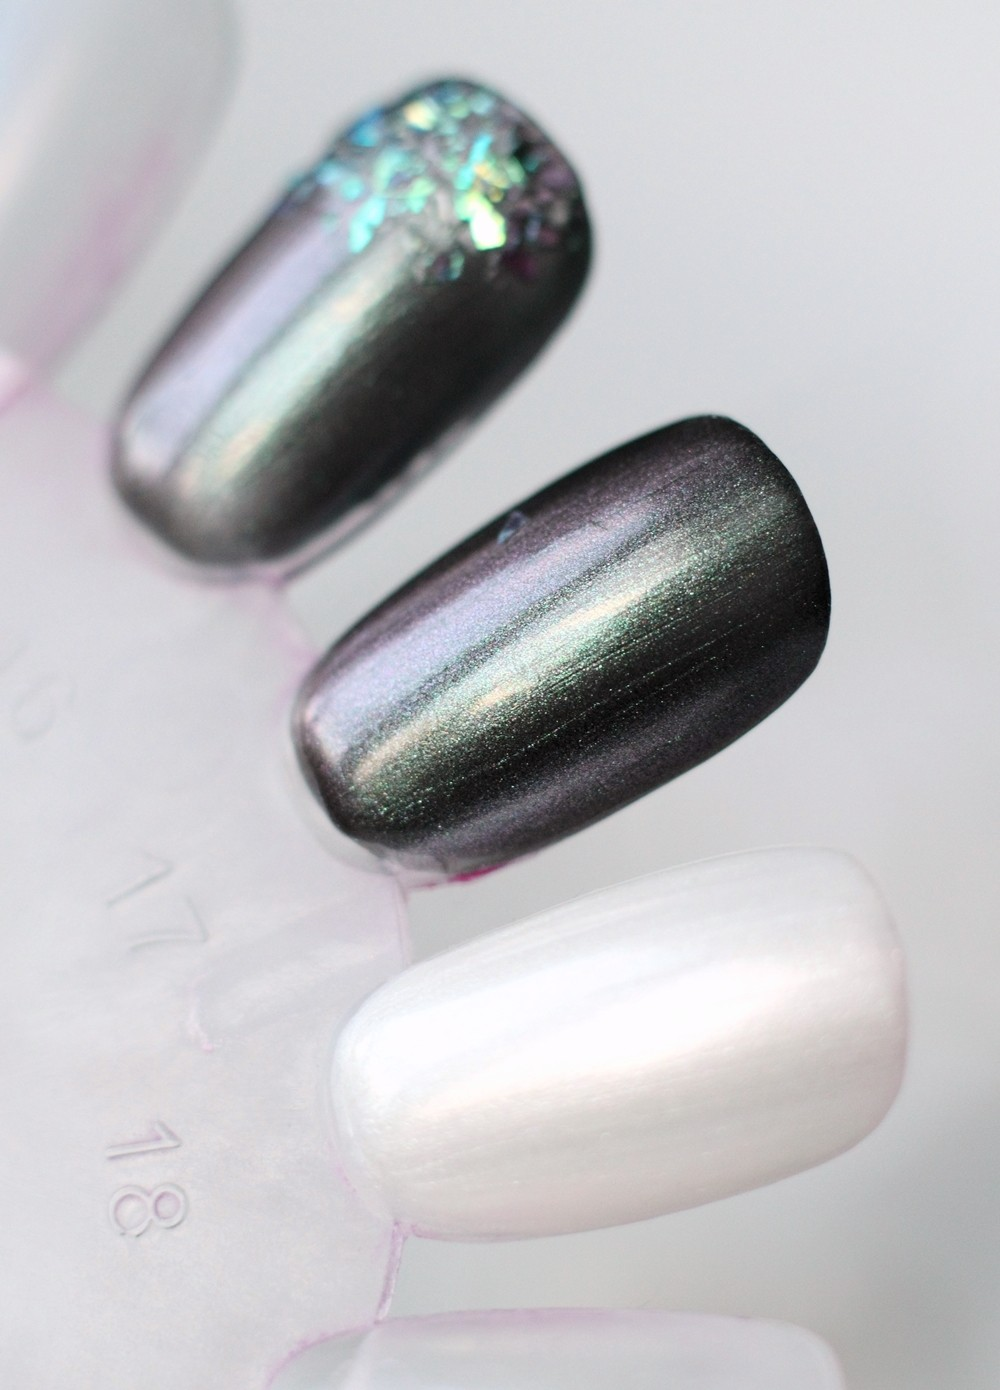 P2 Limited Edition The future is mine Space Glam Nagellacke Swatch